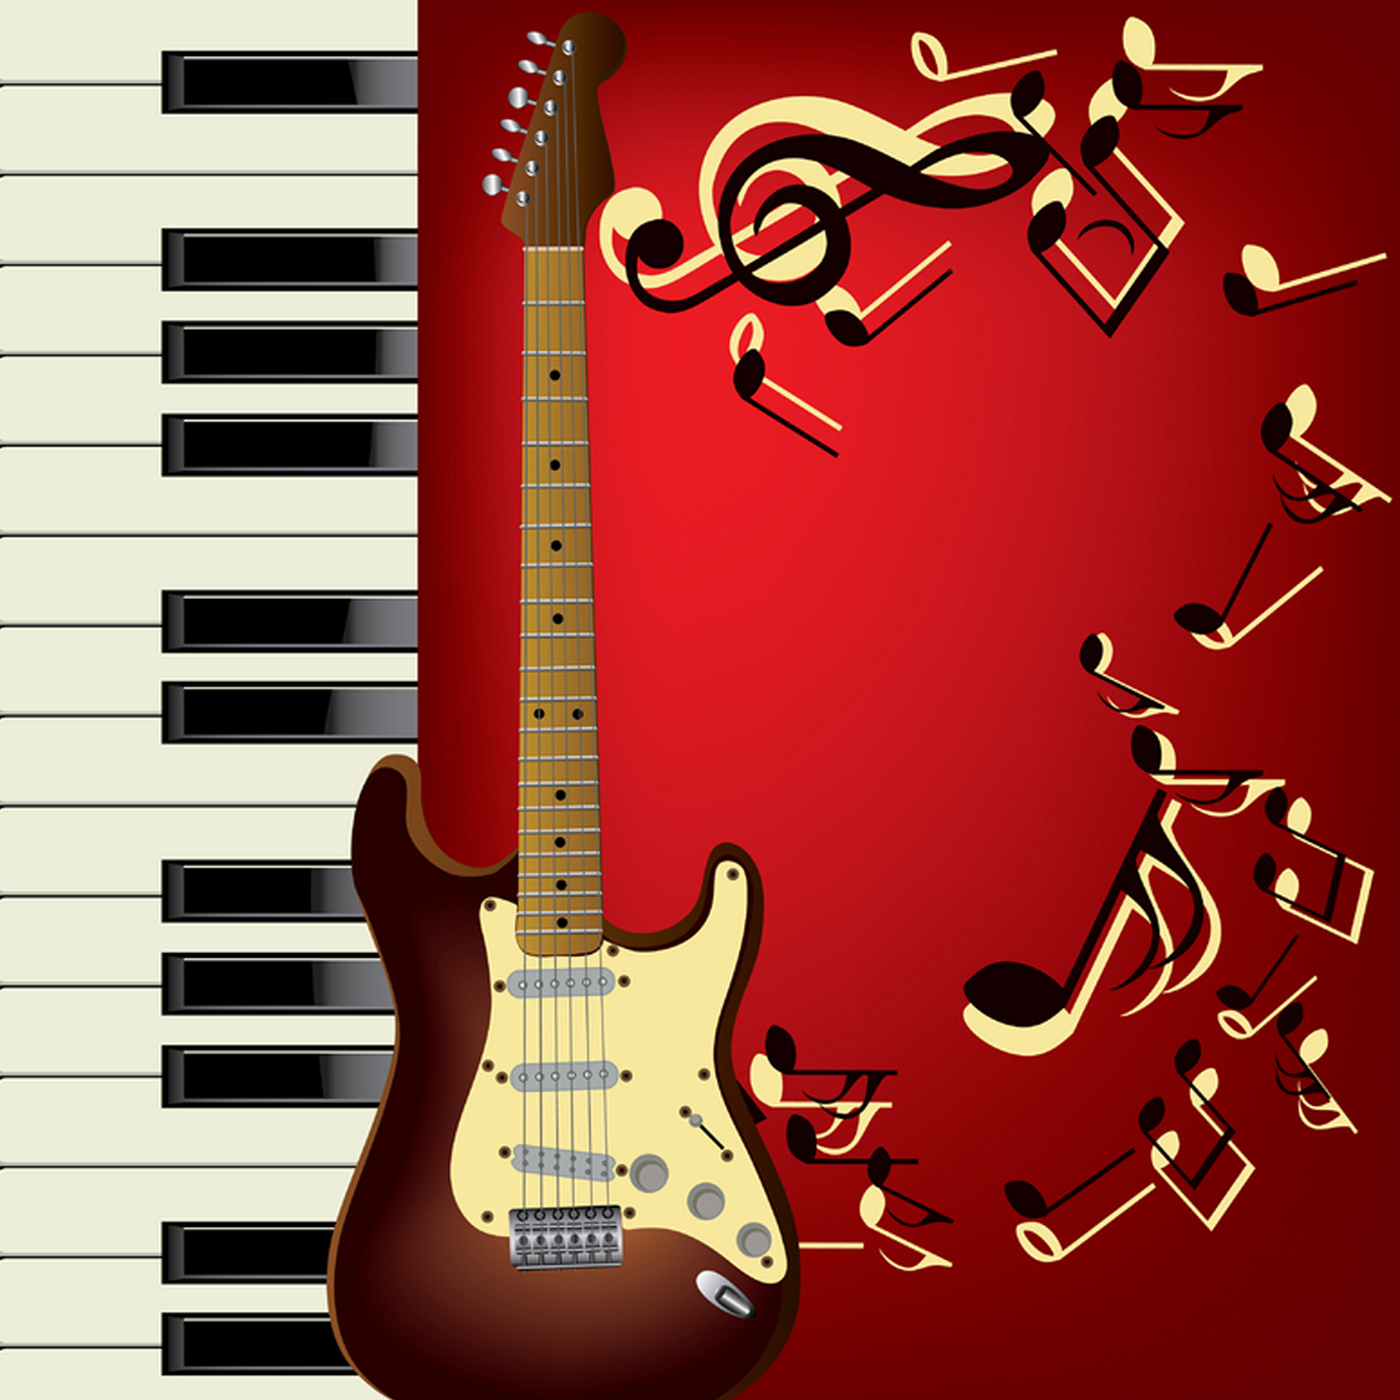 bebop free jazz and fusion Online shopping for digital music from a great selection of jazz fusion, swing jazz, avant garde & free jazz, traditional jazz & ragtime, vocal jazz, latin jazz & more at everyday low prices.